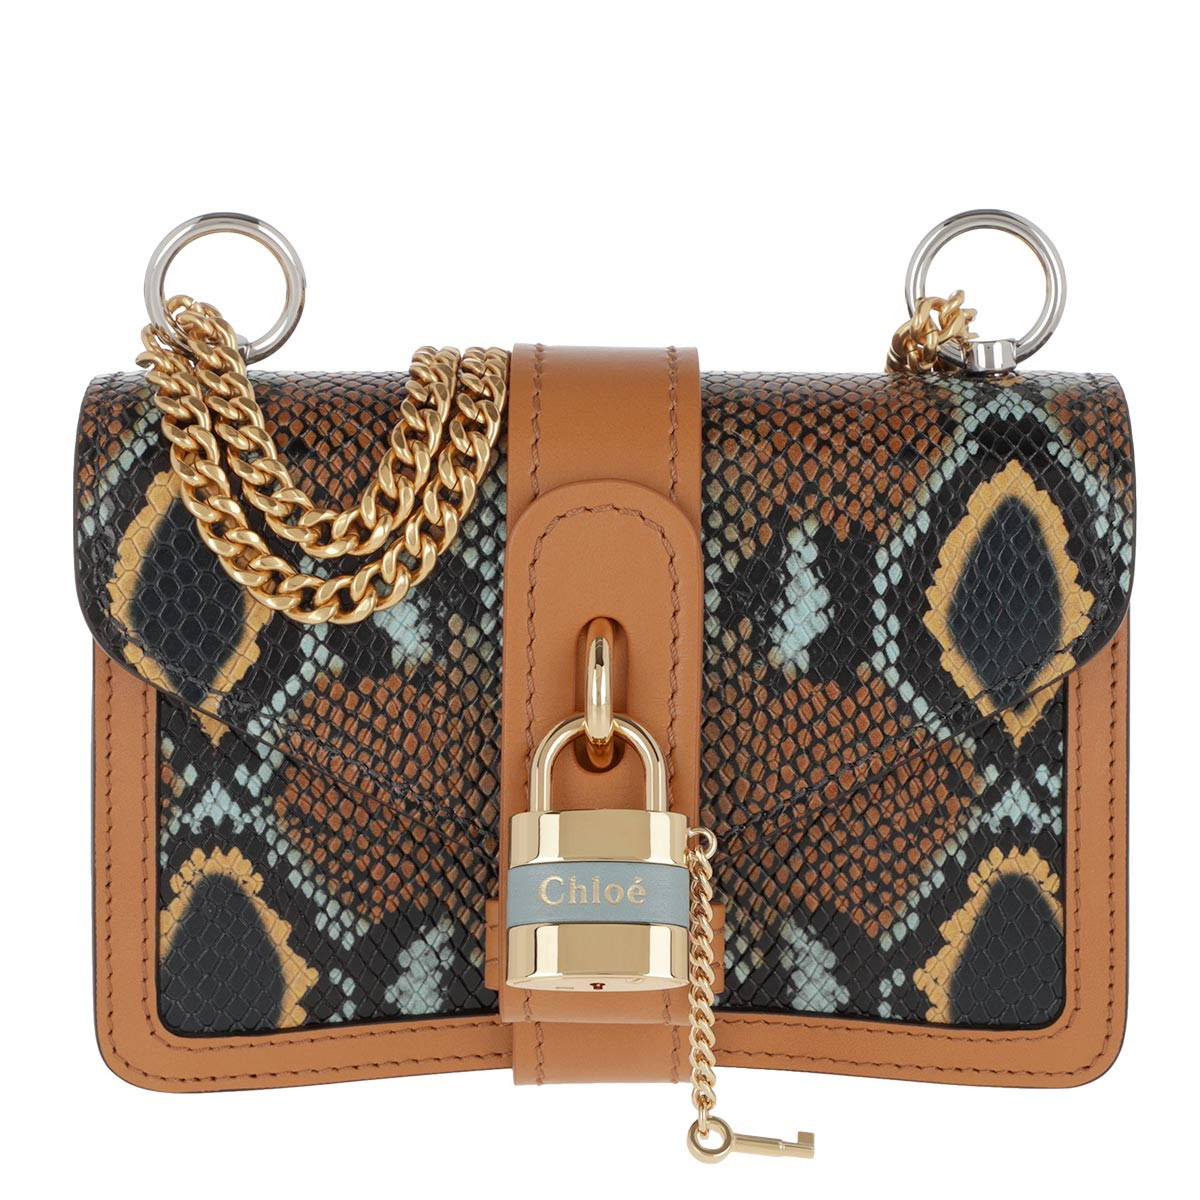 Chloé Umhängetasche - Aby Shoulder Bag Snake Printed Leather Faded Blue - in cognac - für Damen